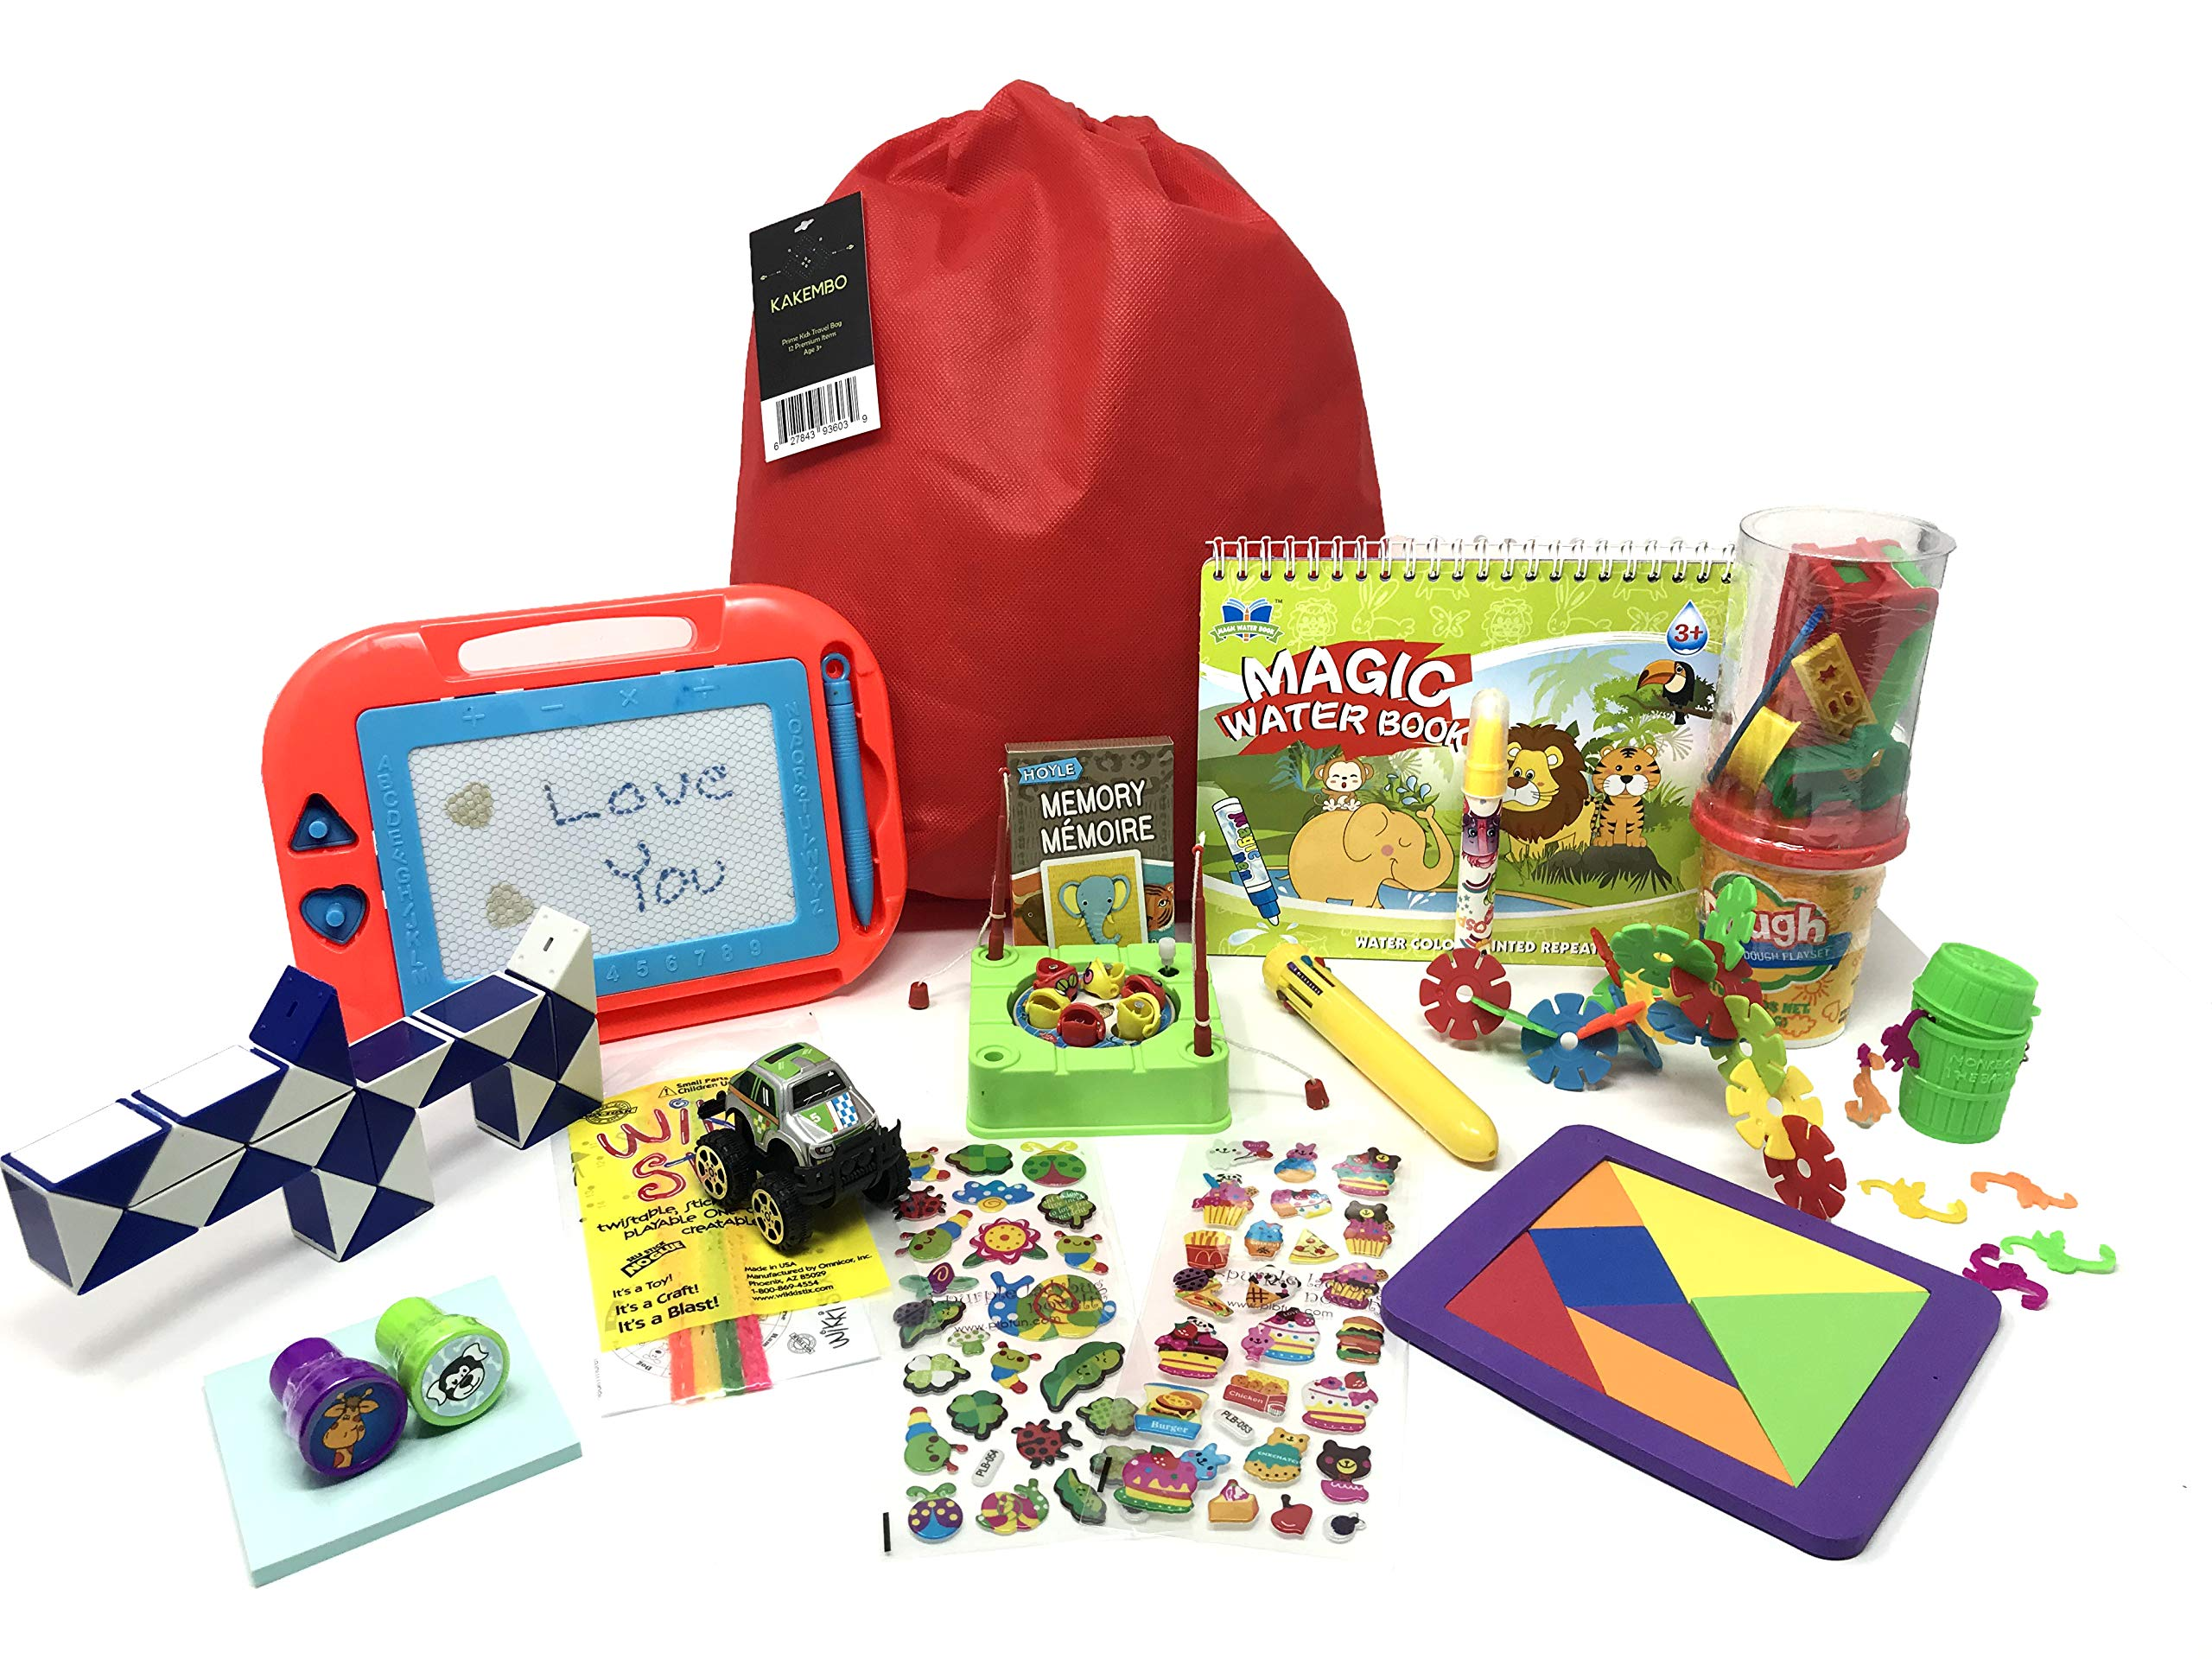 Deluxe Travel Activity Bag for Kids. Full of Travel Games & Travel Toys. Great Road Trip & Airplane Activities for Kids. Includes 16 Premium Items Like Magnetic Drawing Board, Fishing Game. Ages 5+ by Kakembo